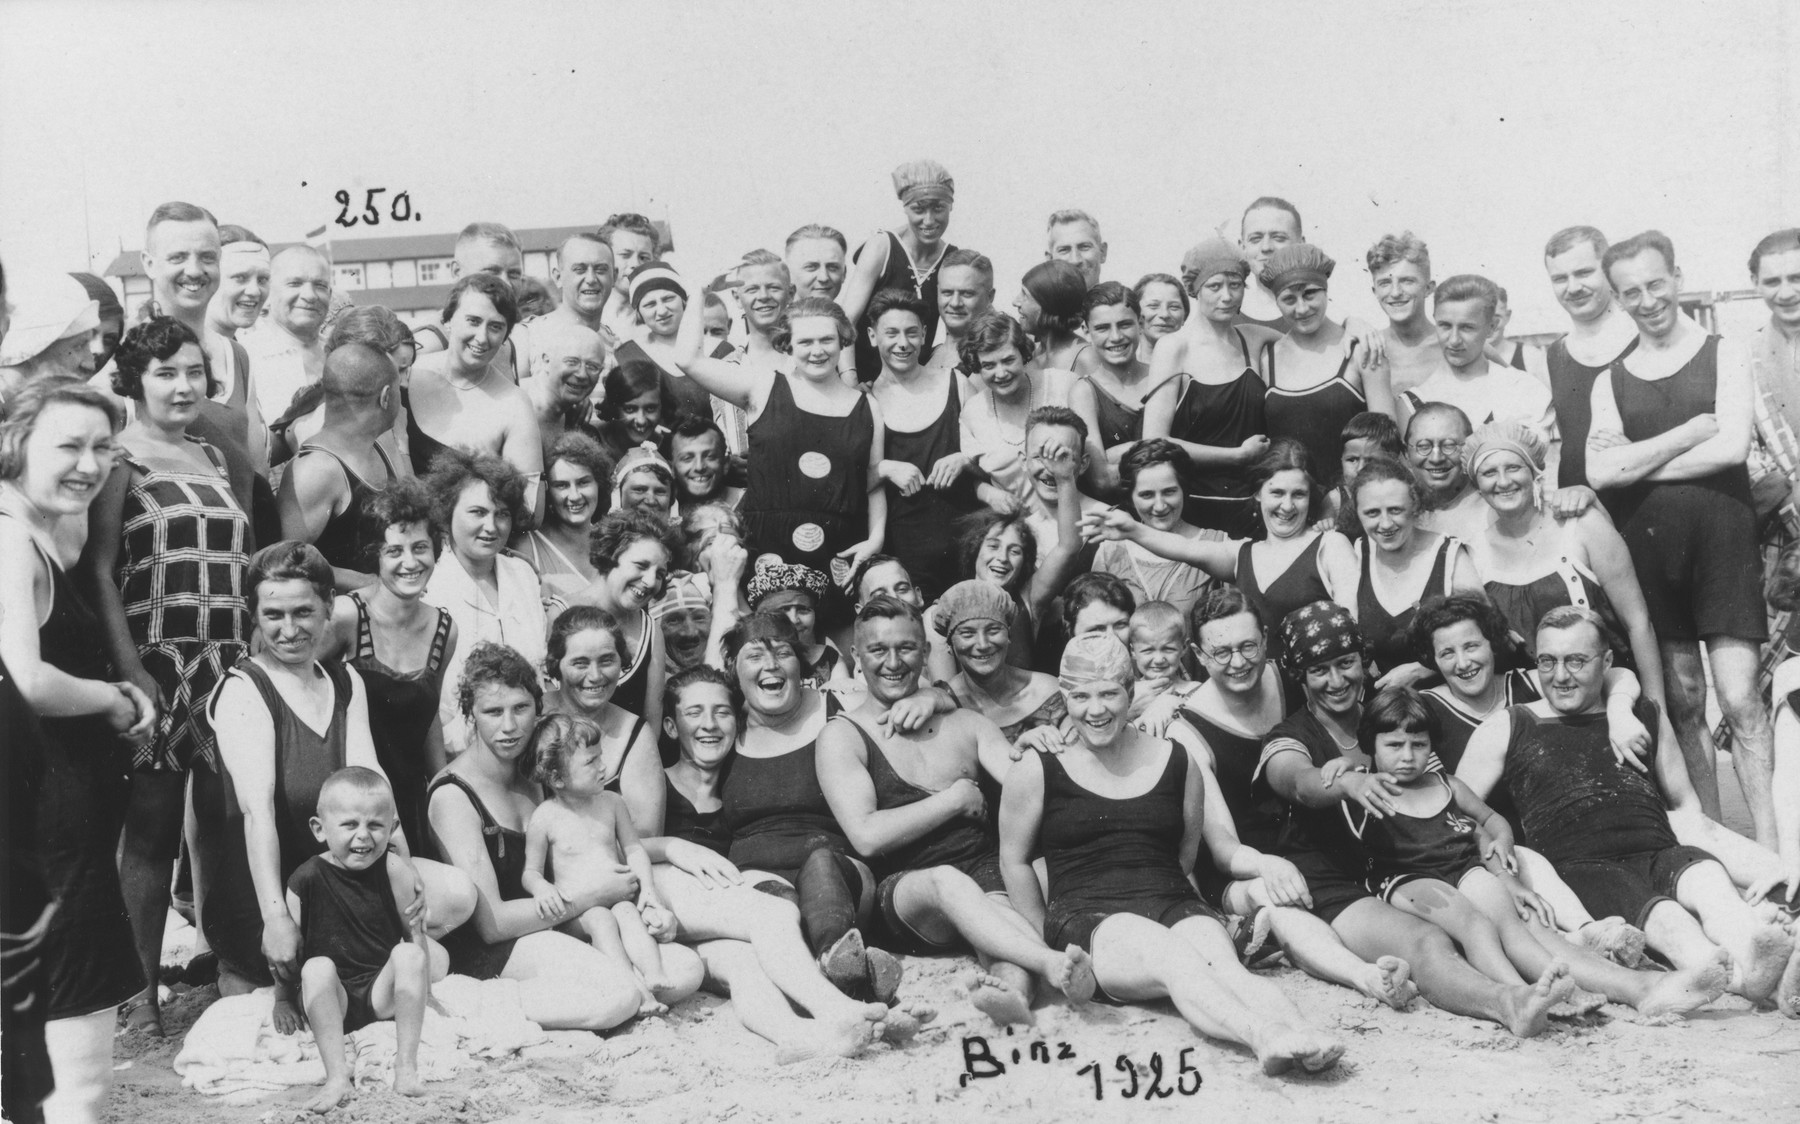 Group portrait of bathers on the beach in Binz, Germany.  Among those pictured is Margarete Schindler Plachte (front row, second from the right, with her arm around a man).